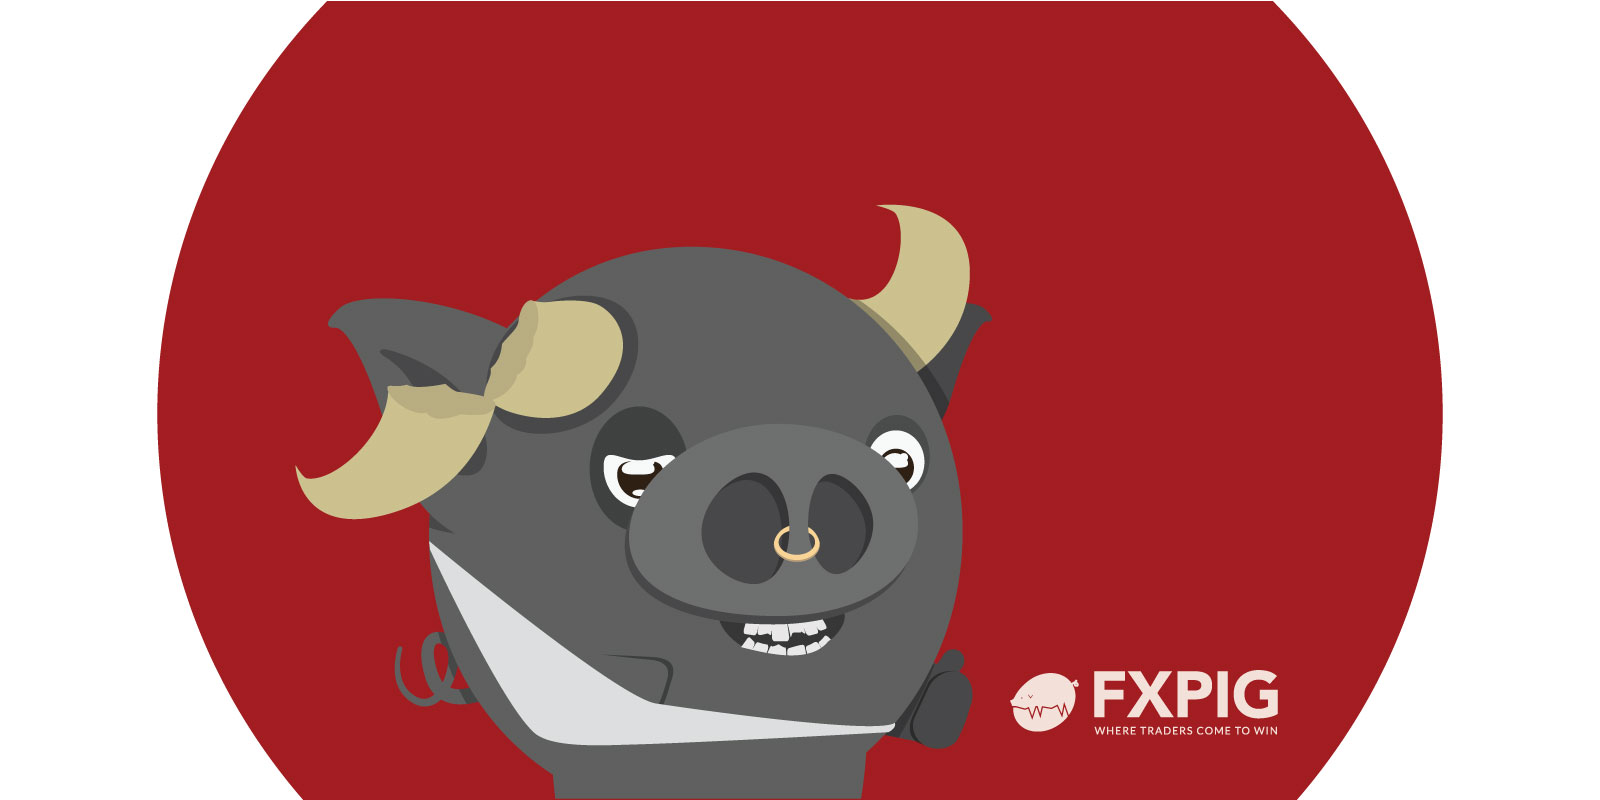 Forex_Trading_Fx_Trader_FXPIG_Tech-analysis_Tech-Targets_Bulls-and-bears-01.02.2019